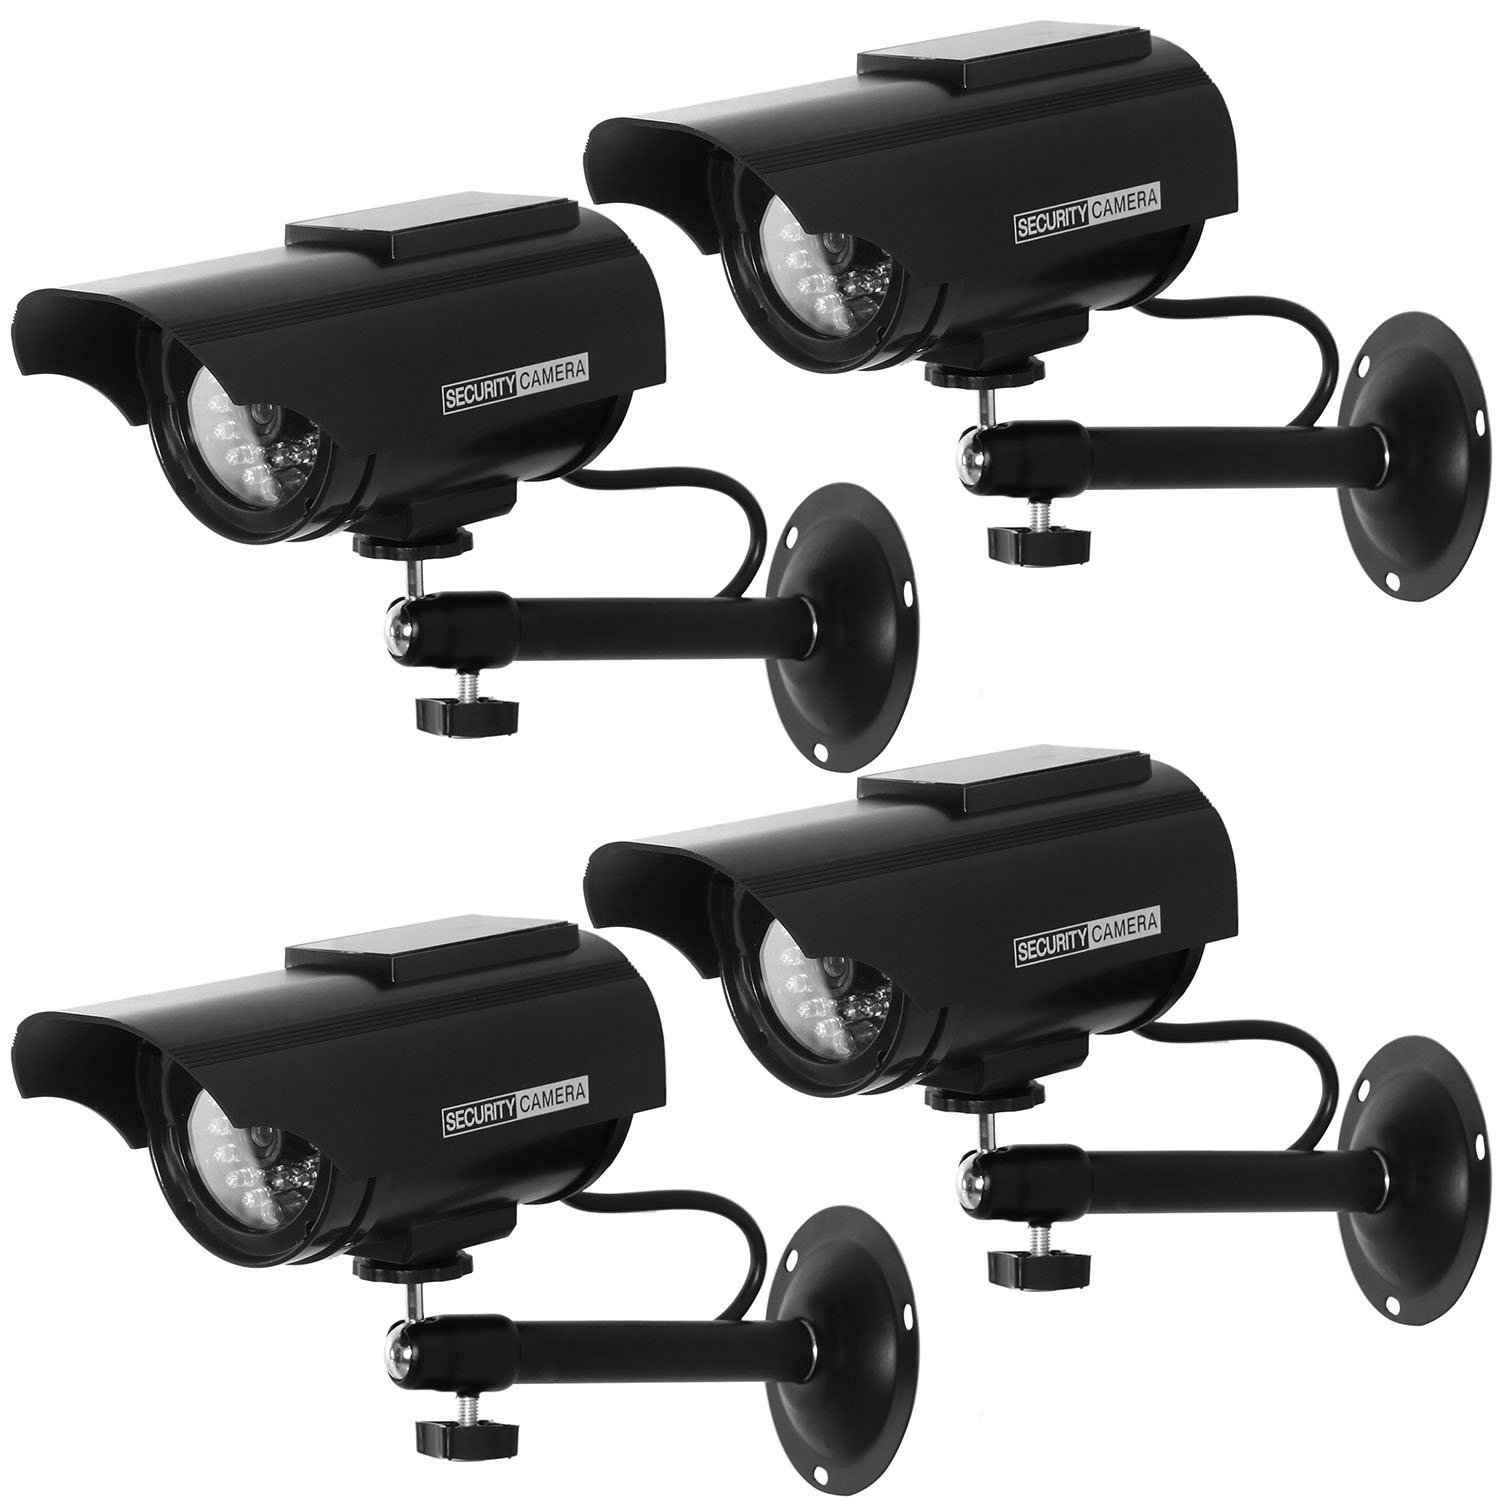 WALI Solar Powered Bullet Dummy Fake Simulated Surveillance Security CCTV Dome Camera Indoor Outdoor with 1 LED Light, Warning Security Alert Sticker Decal (SOLTC-B4), 4 Packs, Black by WALI